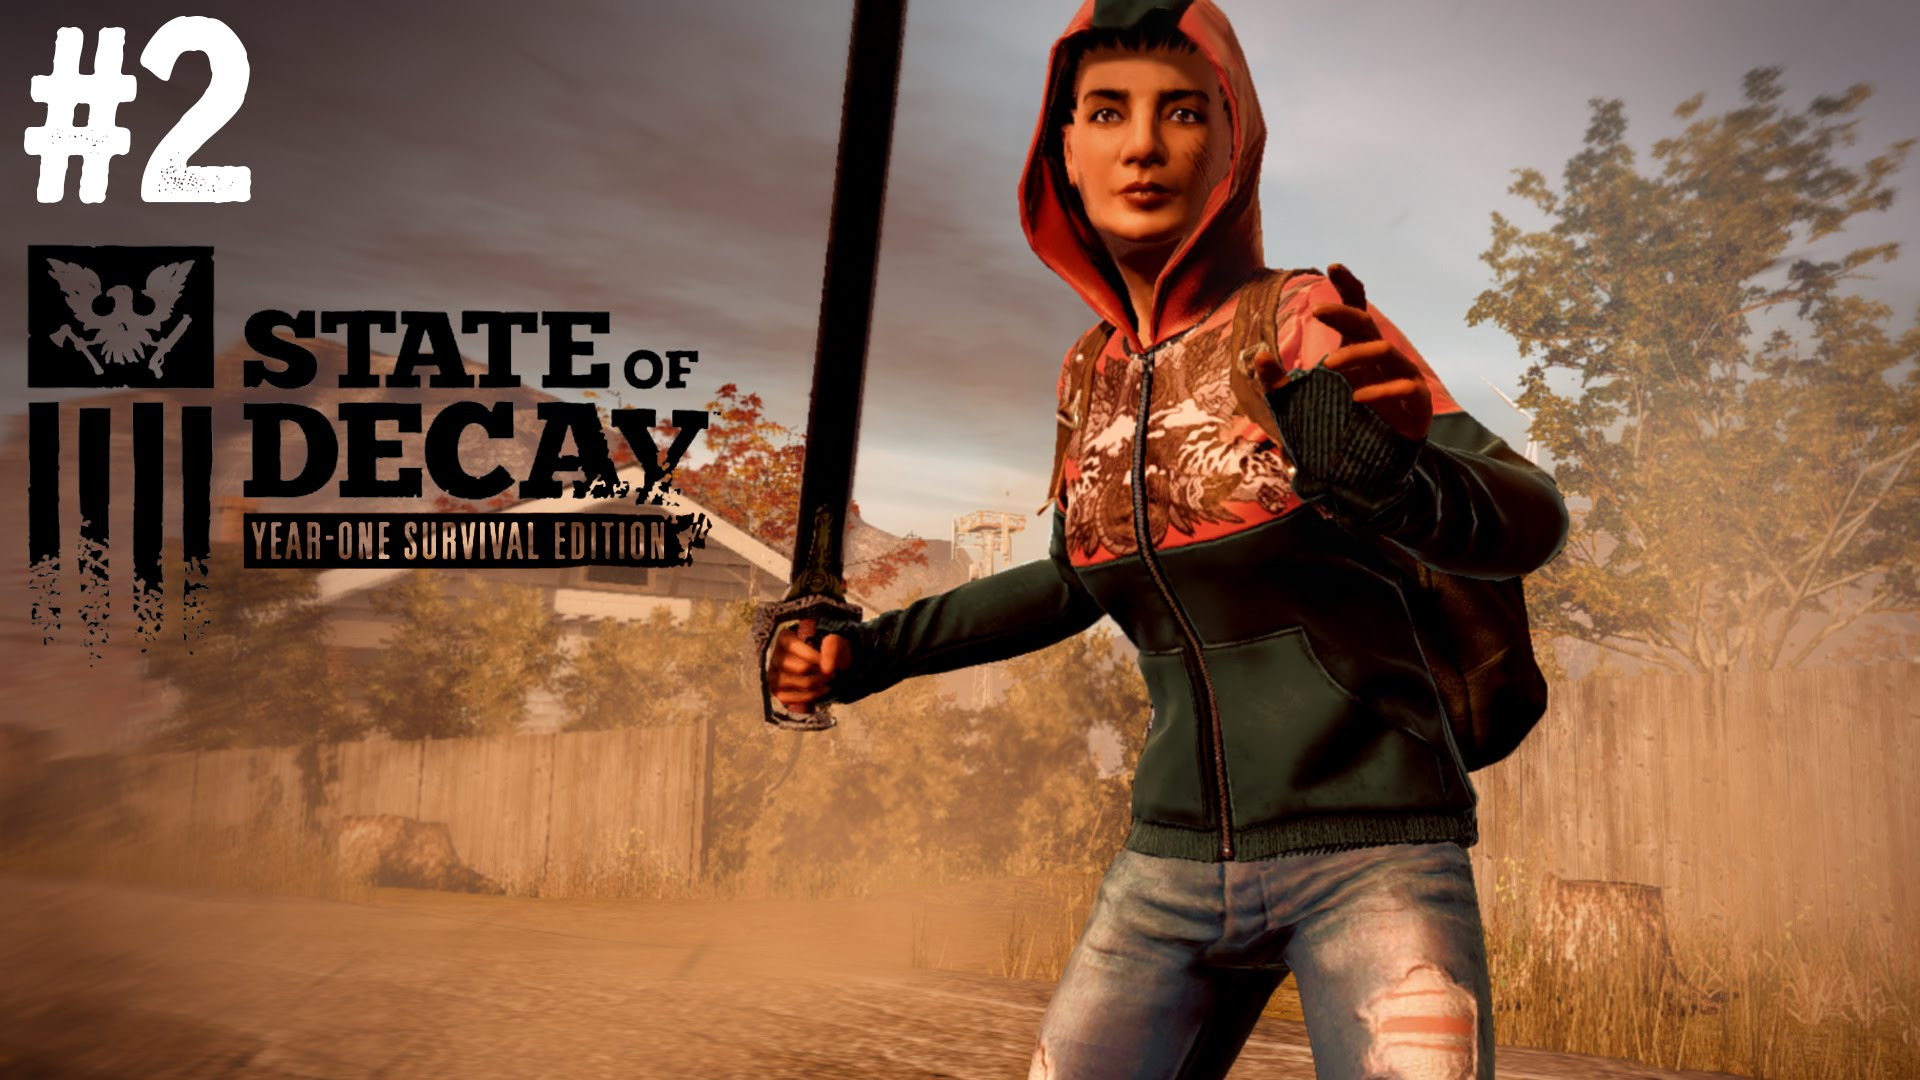 State of Decay Lifeline expansion brings drone strikes zombie hor